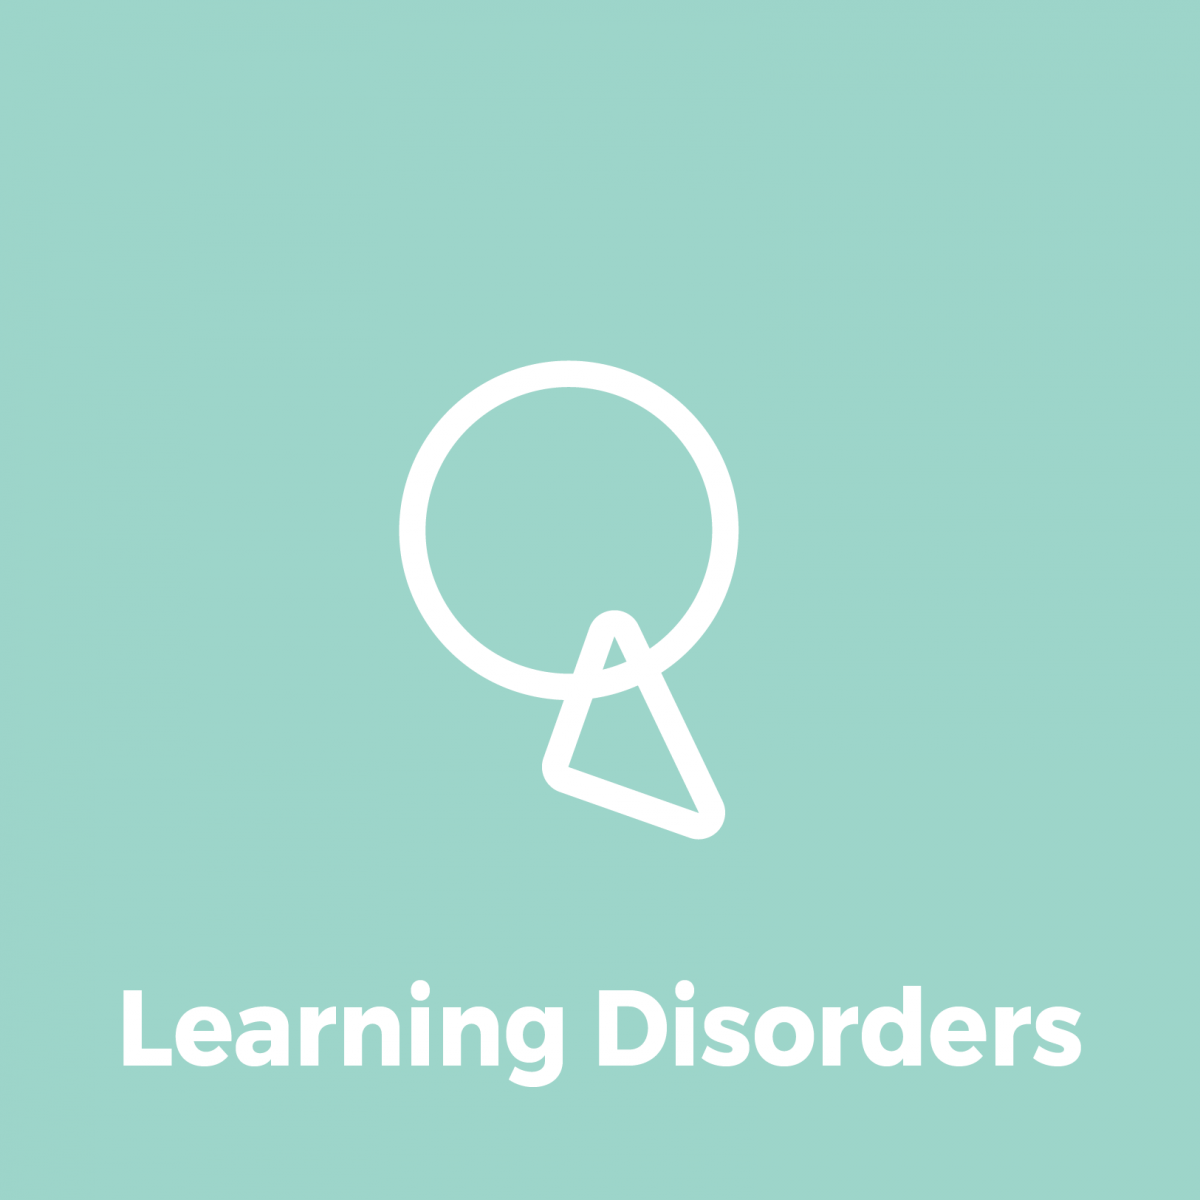 YMC_Identification_LearningDisorders